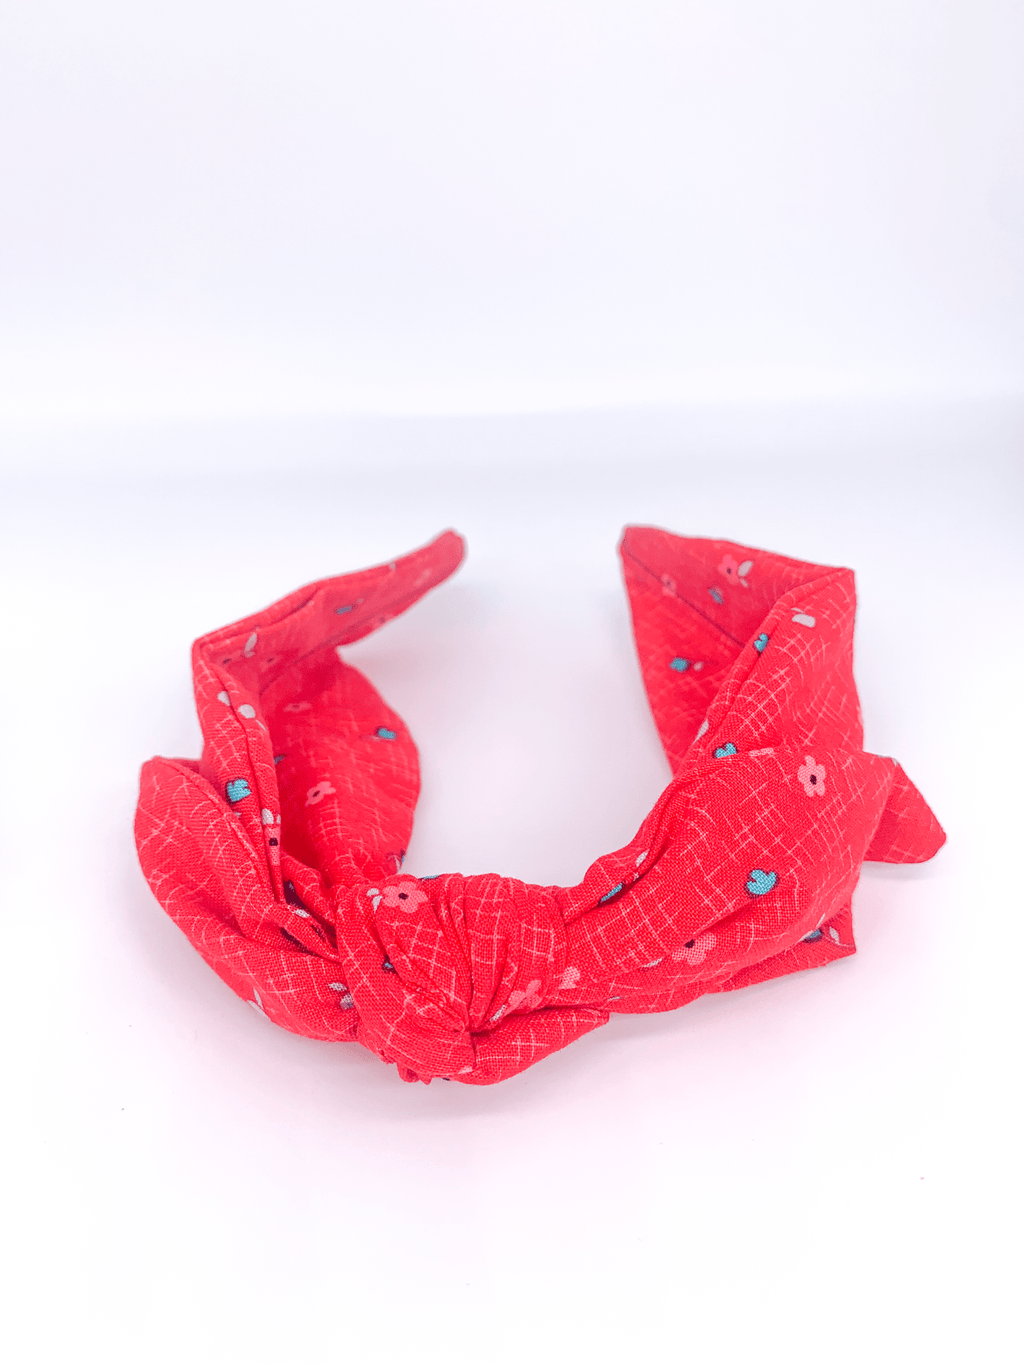 Retro Stiff Headband - Red with tiny blue and pink flowers - MIMI+MARTHA